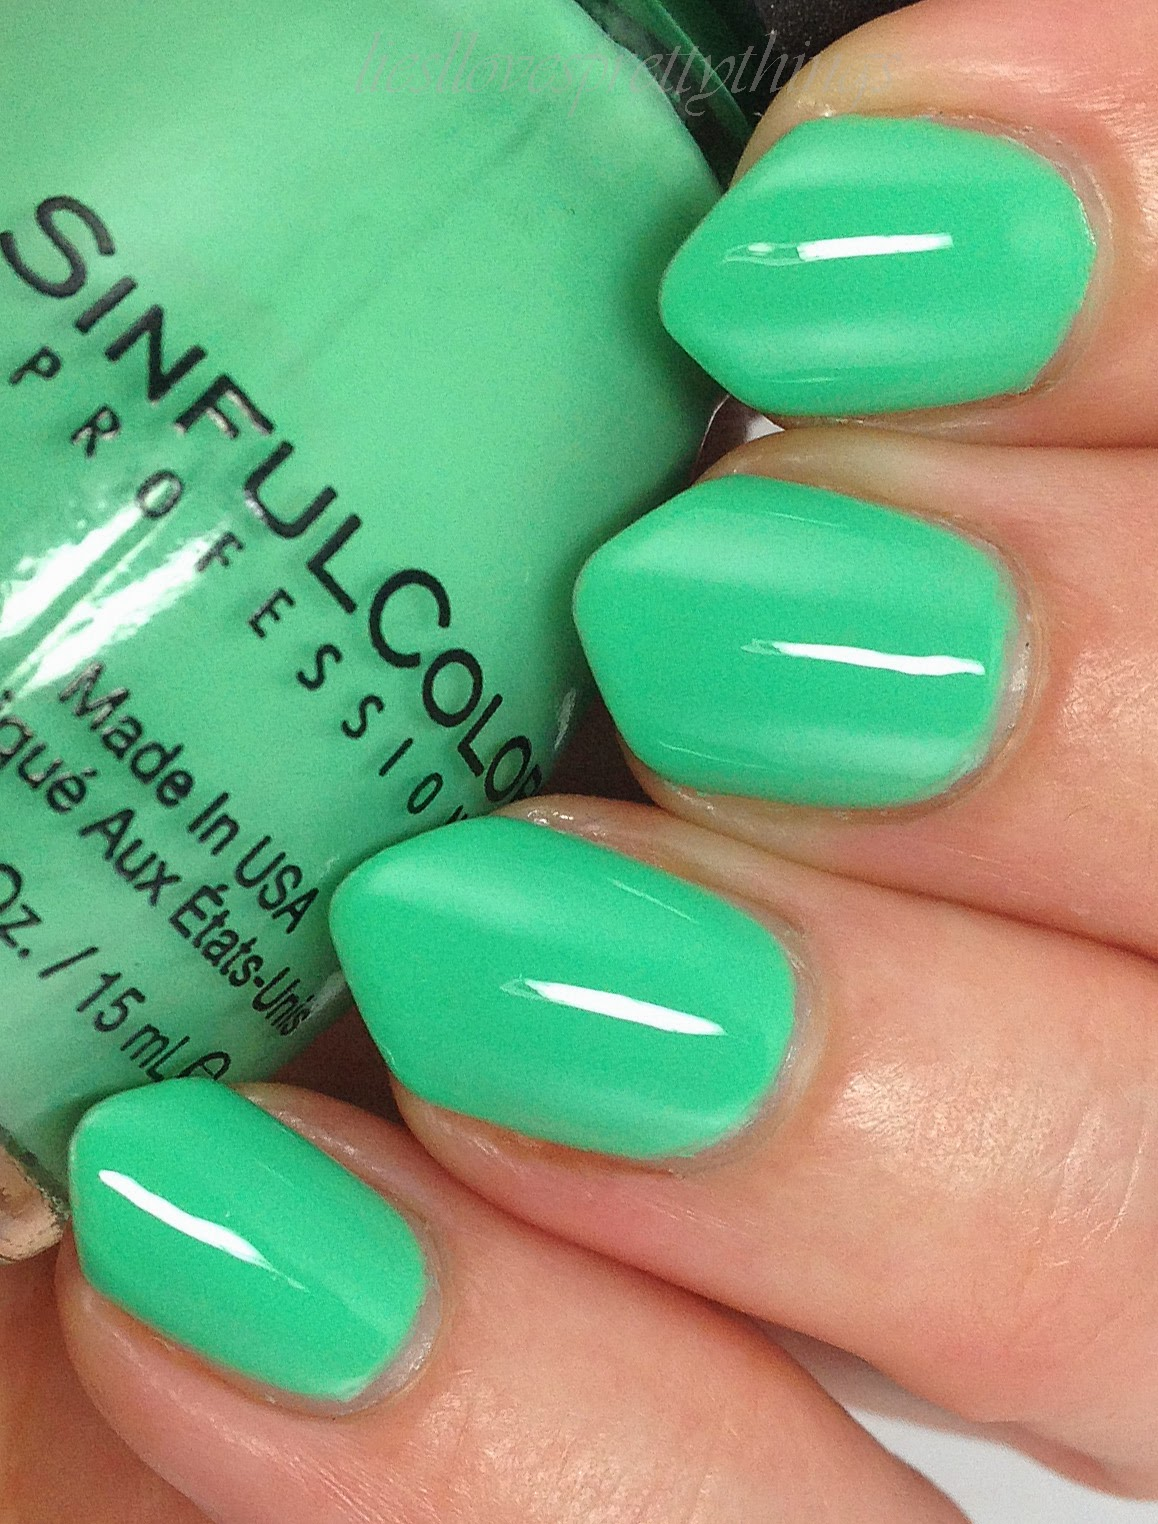 Sinful Colors Mint Tropics